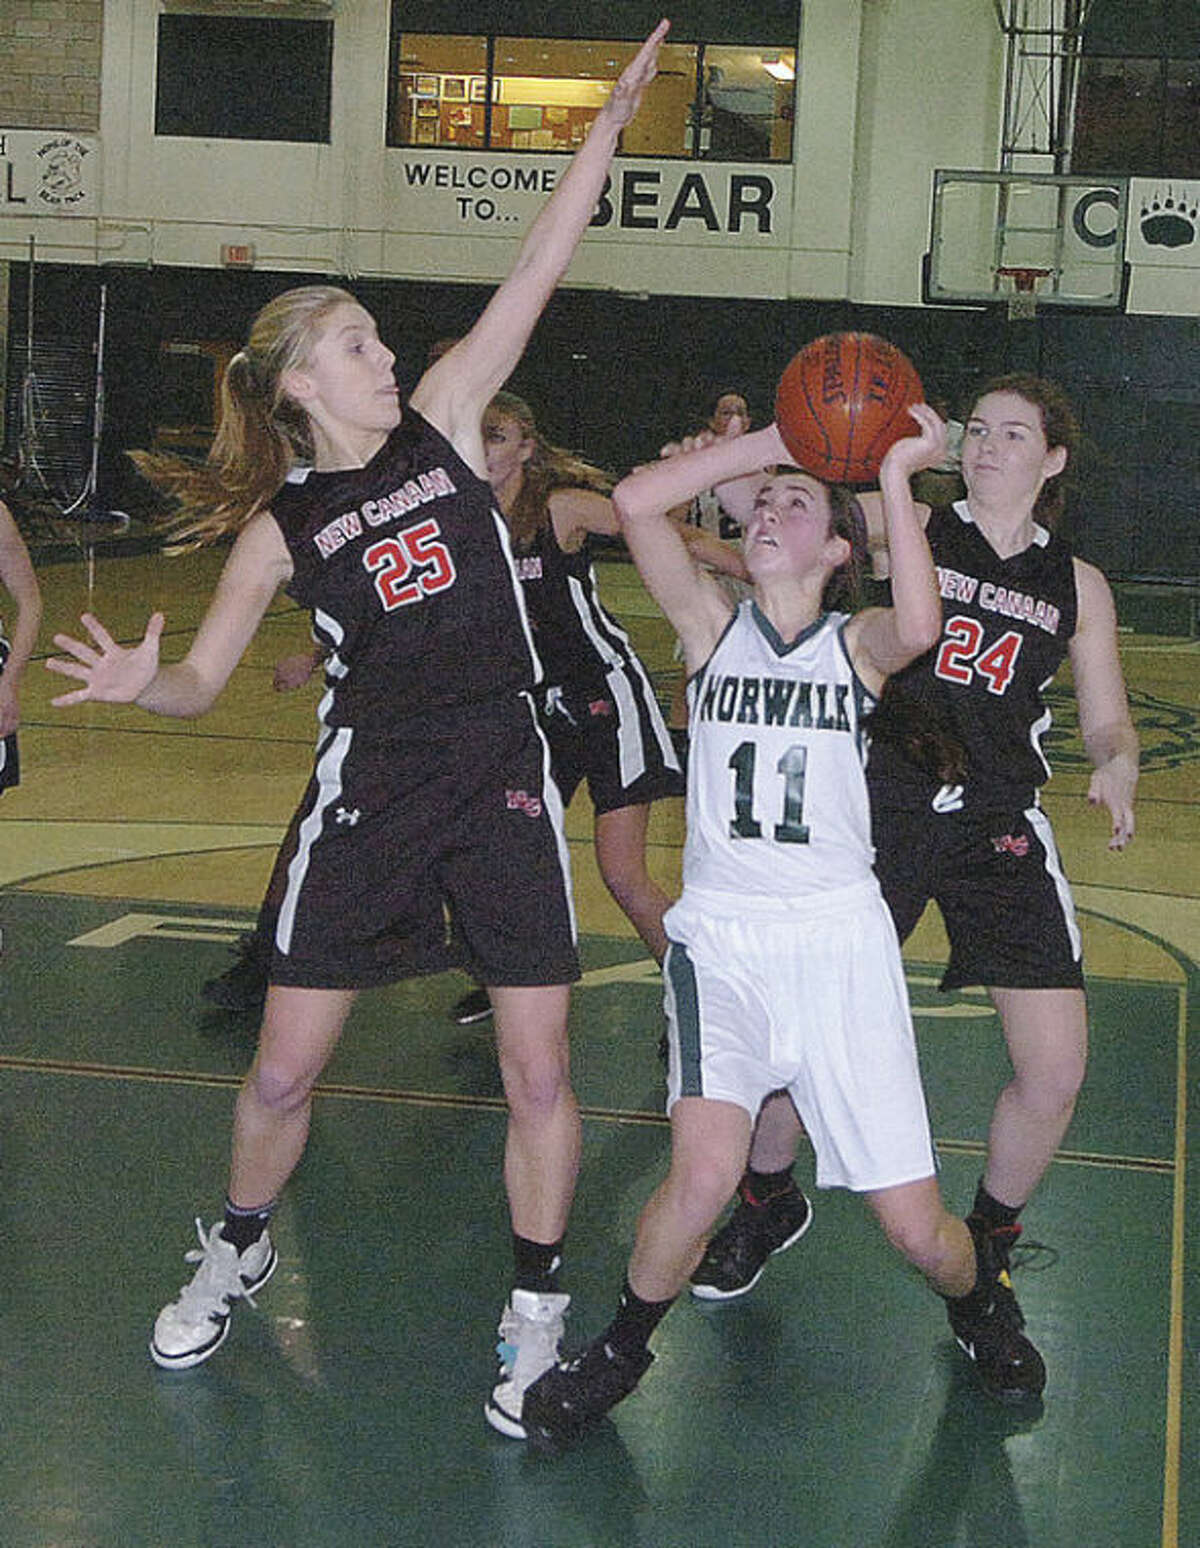 Hour file photo Norwalk's Brianna Fitzgerald looks for a shot during a Feburary game against New Canaan. Fitzgerald is back for a Bears' squad hoping to improve.